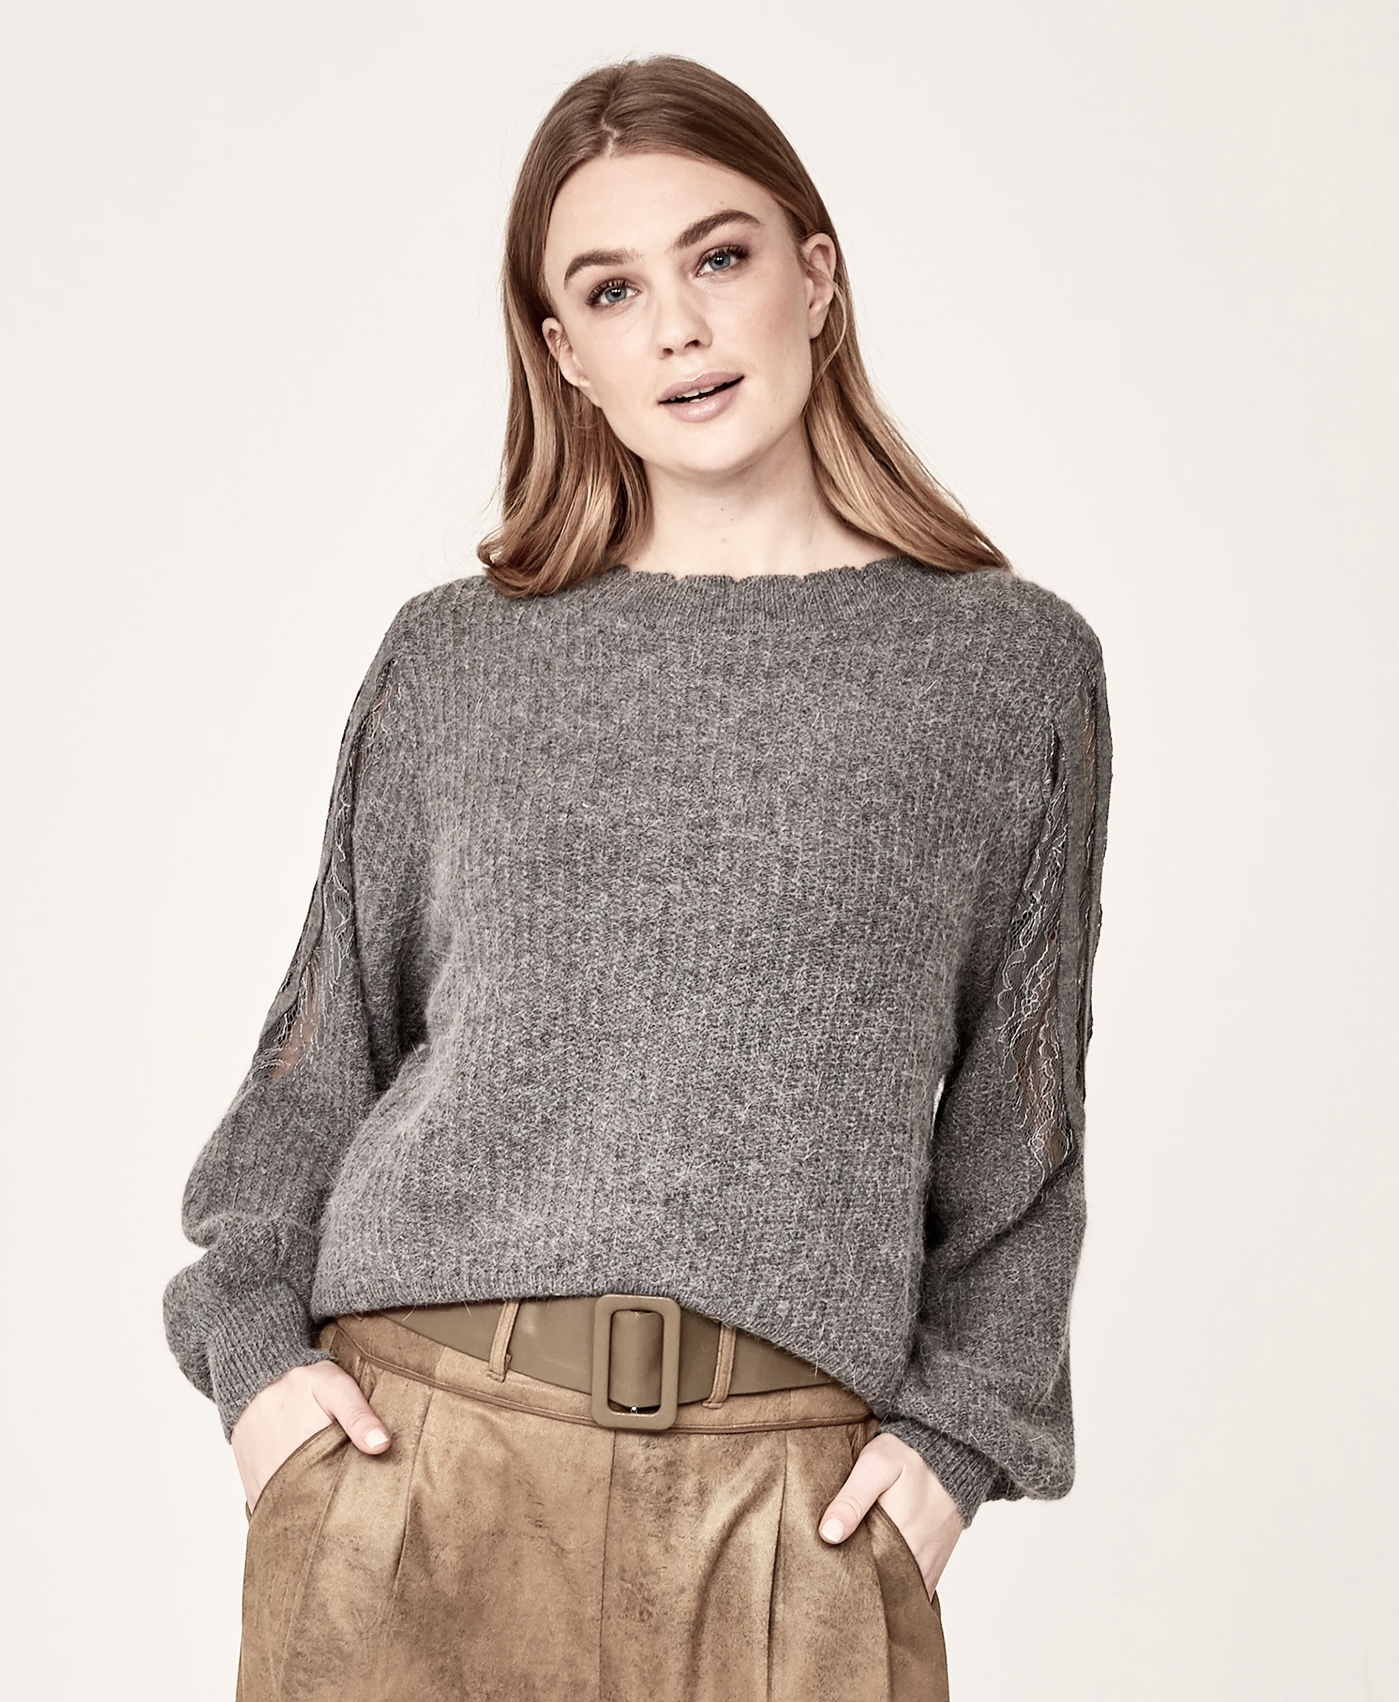 NÜ DENMARK IGA KNIT BLOUSE STATUE IMAGE BY ME